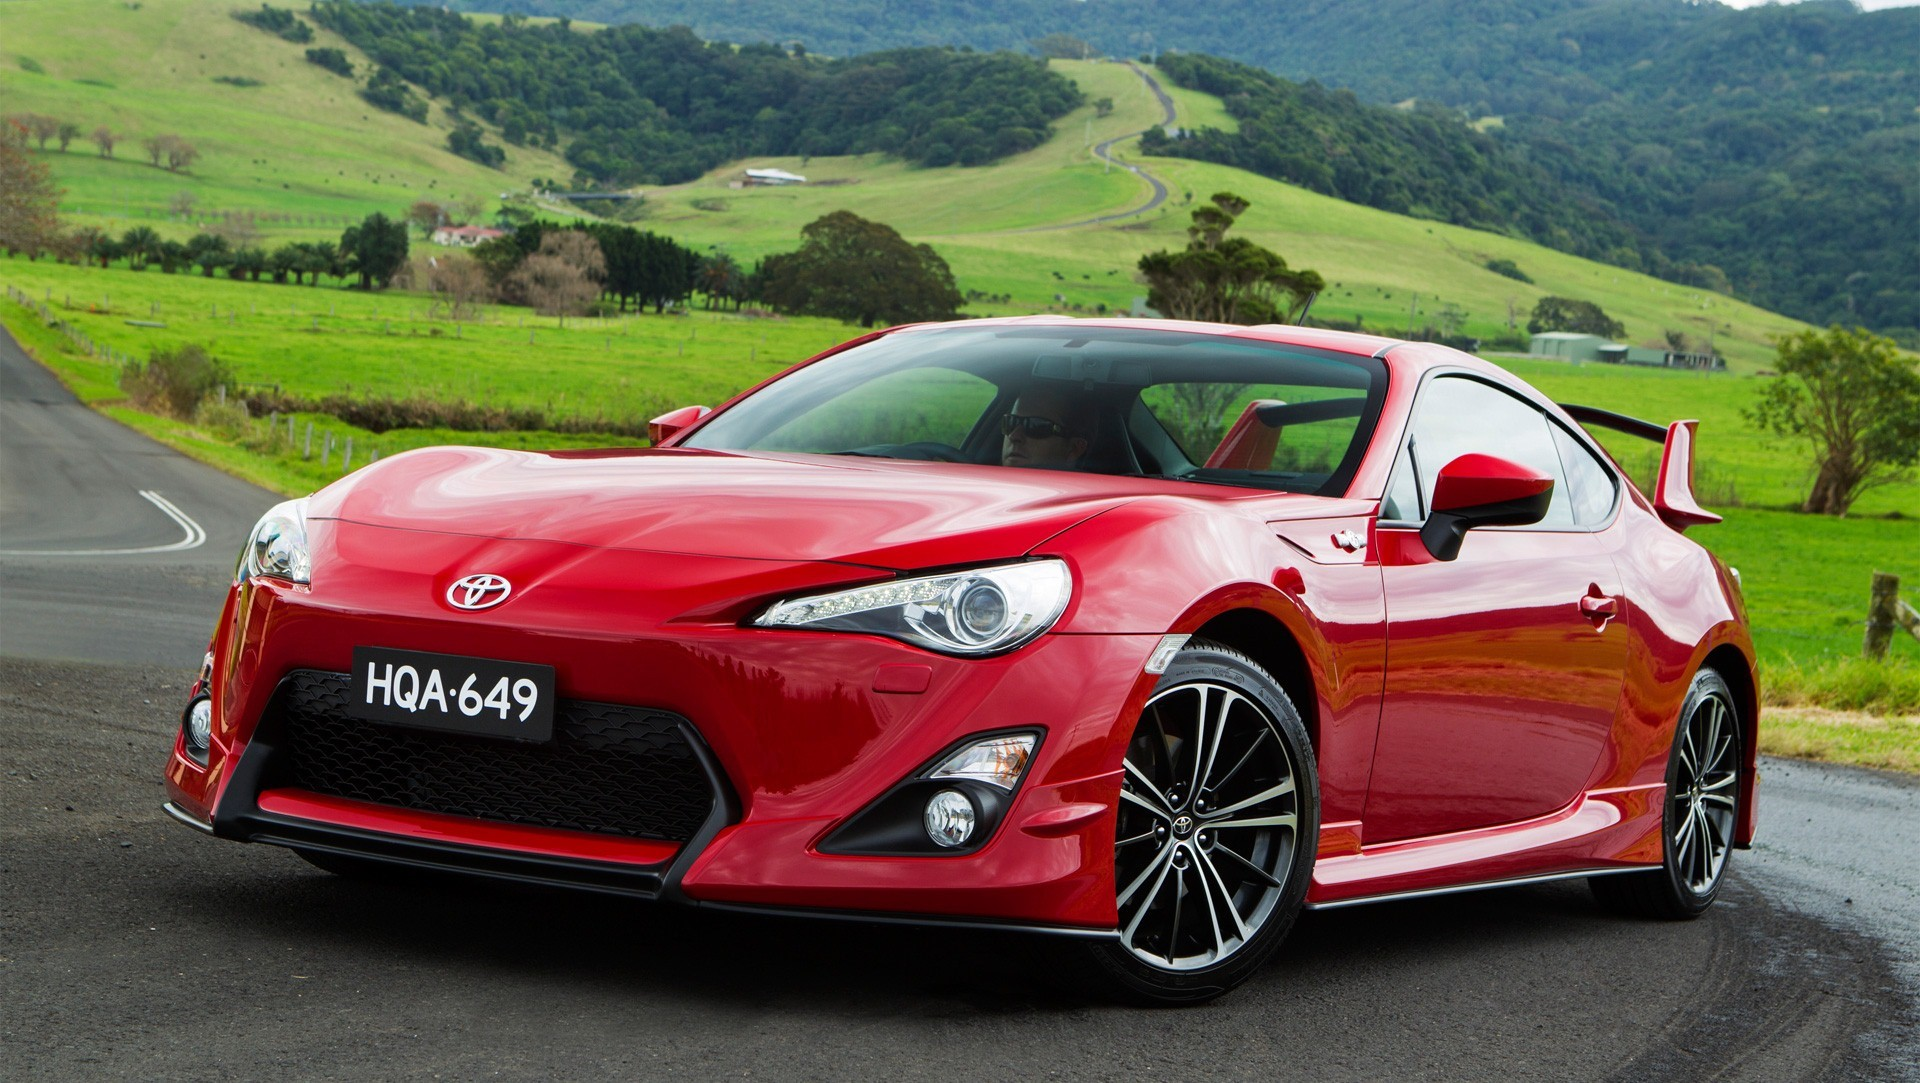 red toyota sport car wallpaper added on 18 05 2013 category toyota 1920x1083